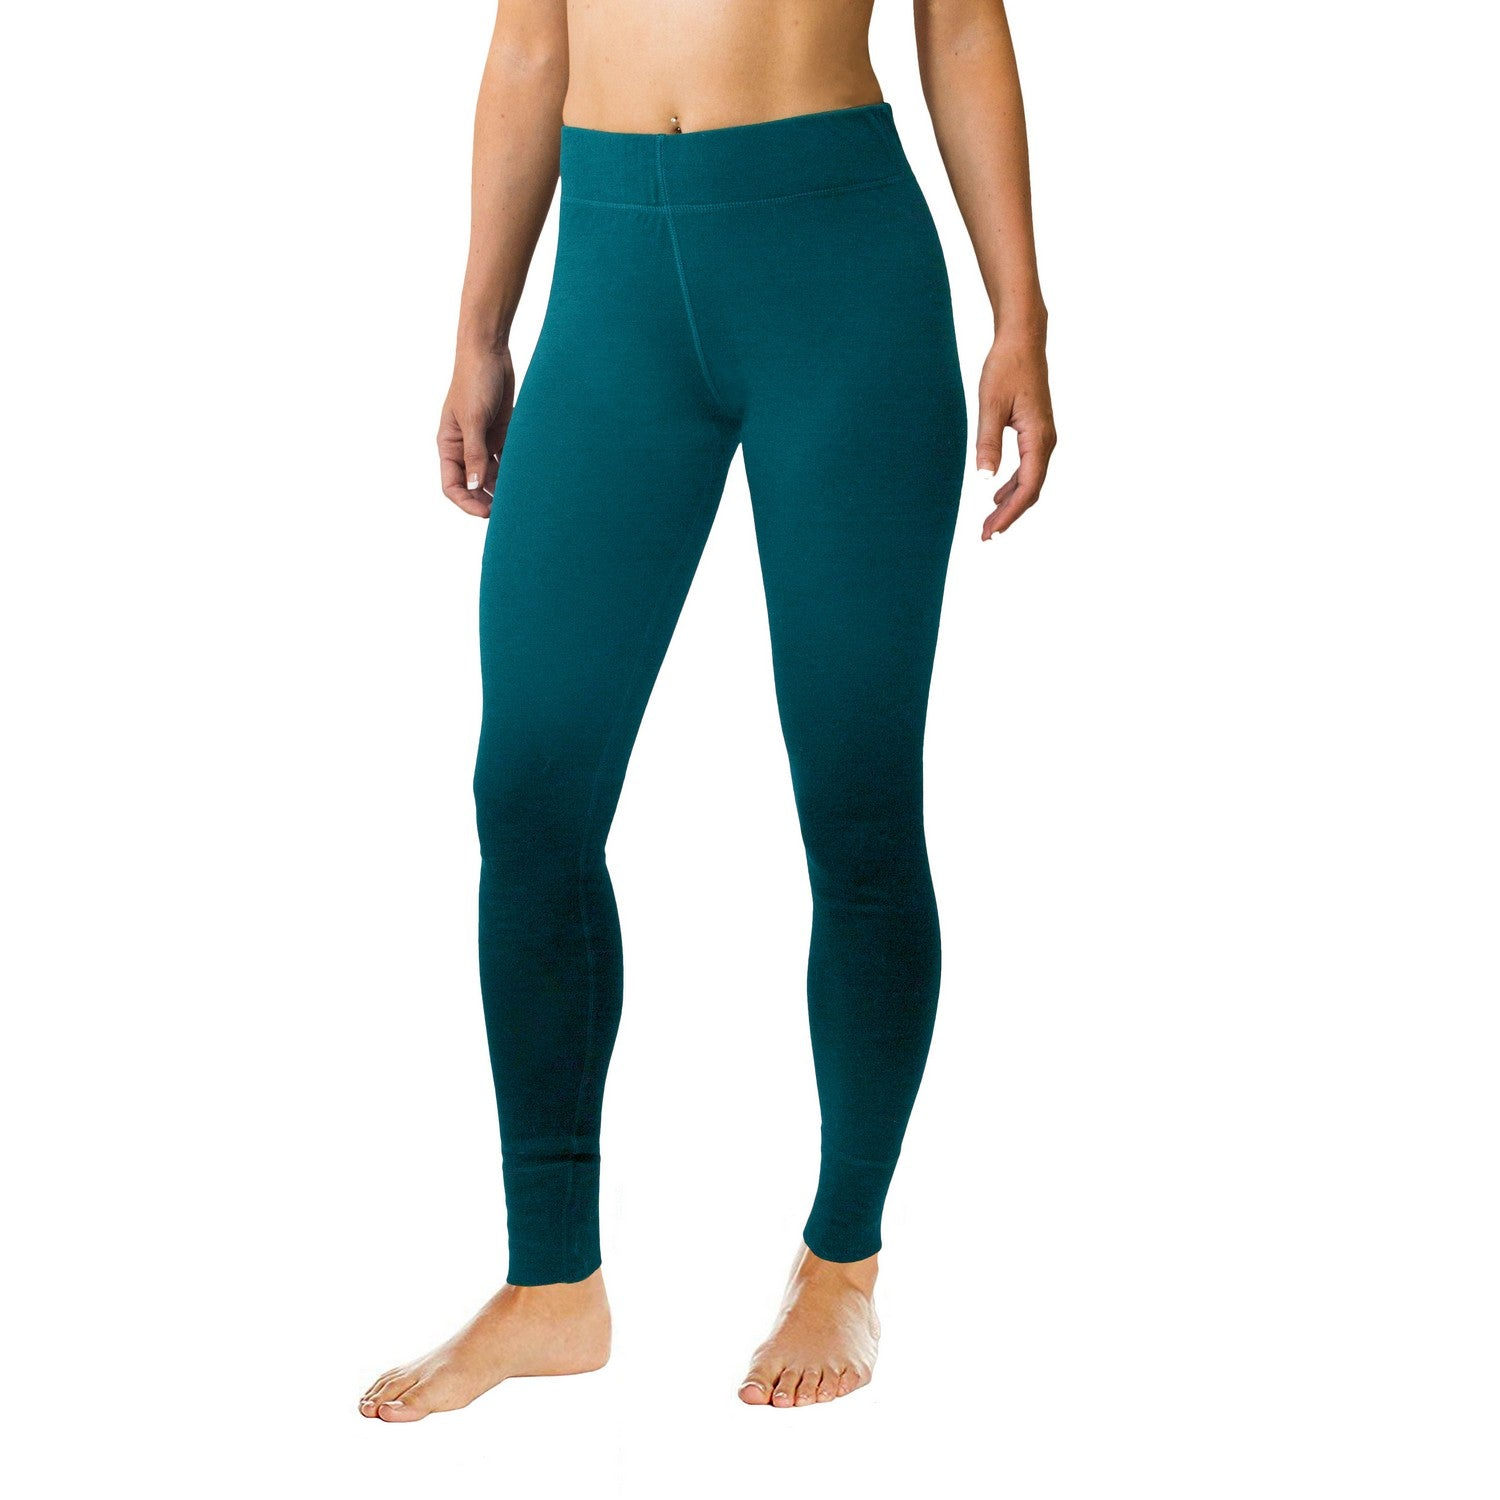 Merino Wool Leggings - Midnight Teal